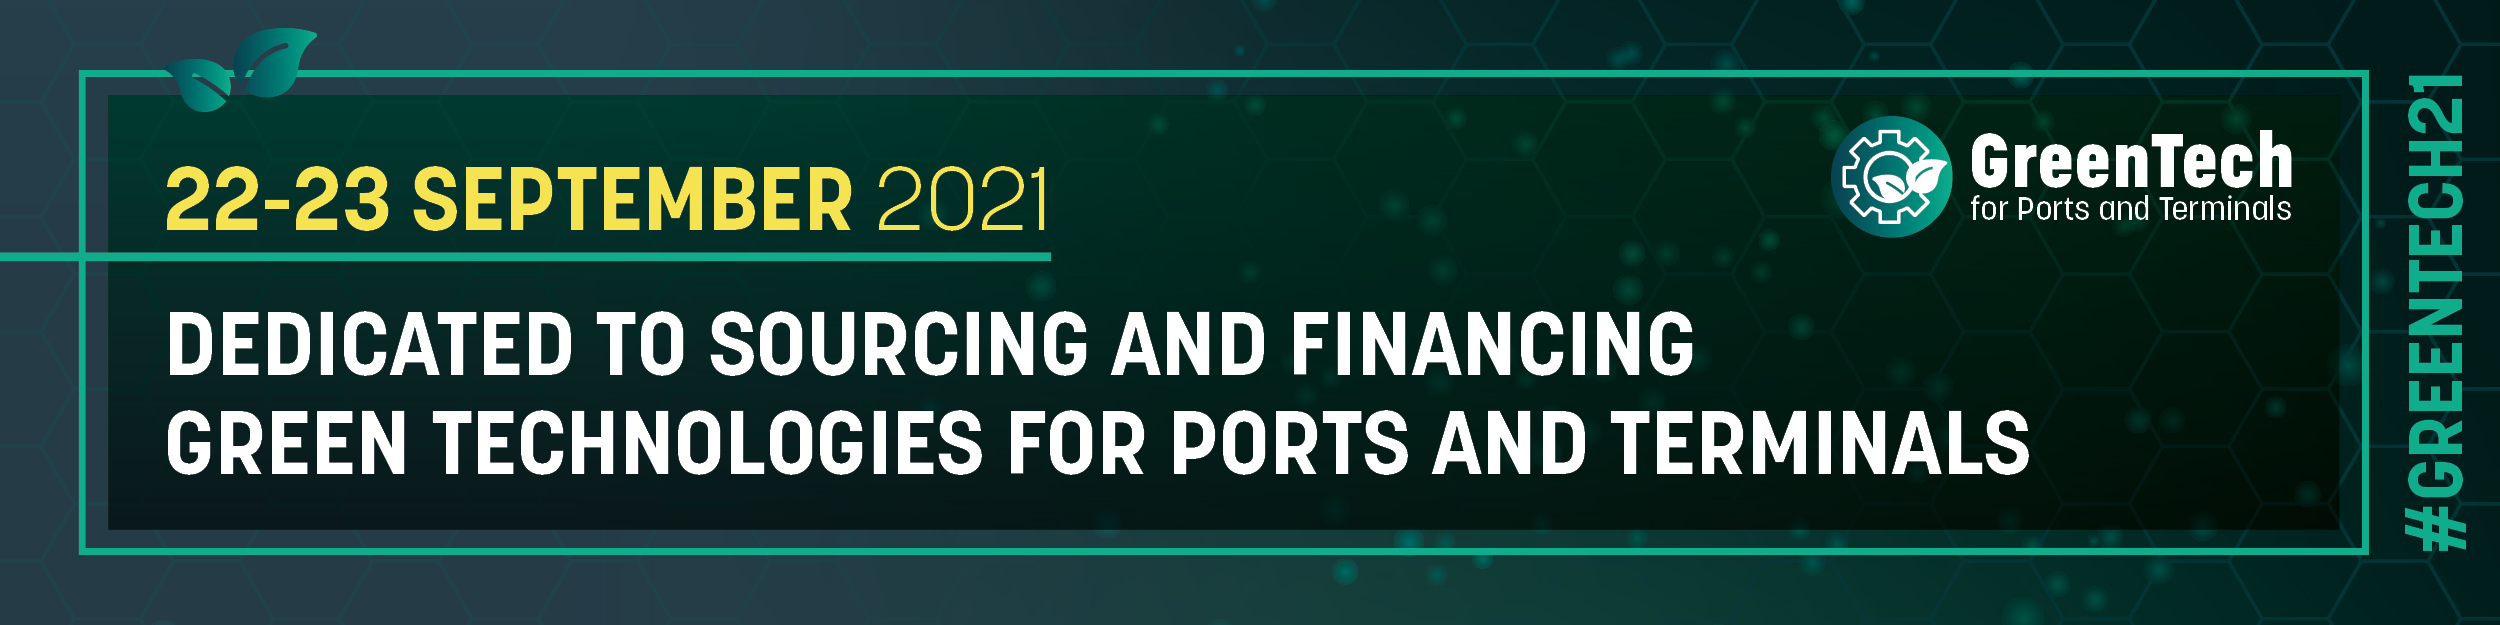 GreenTech for Ports and Terminals 2021